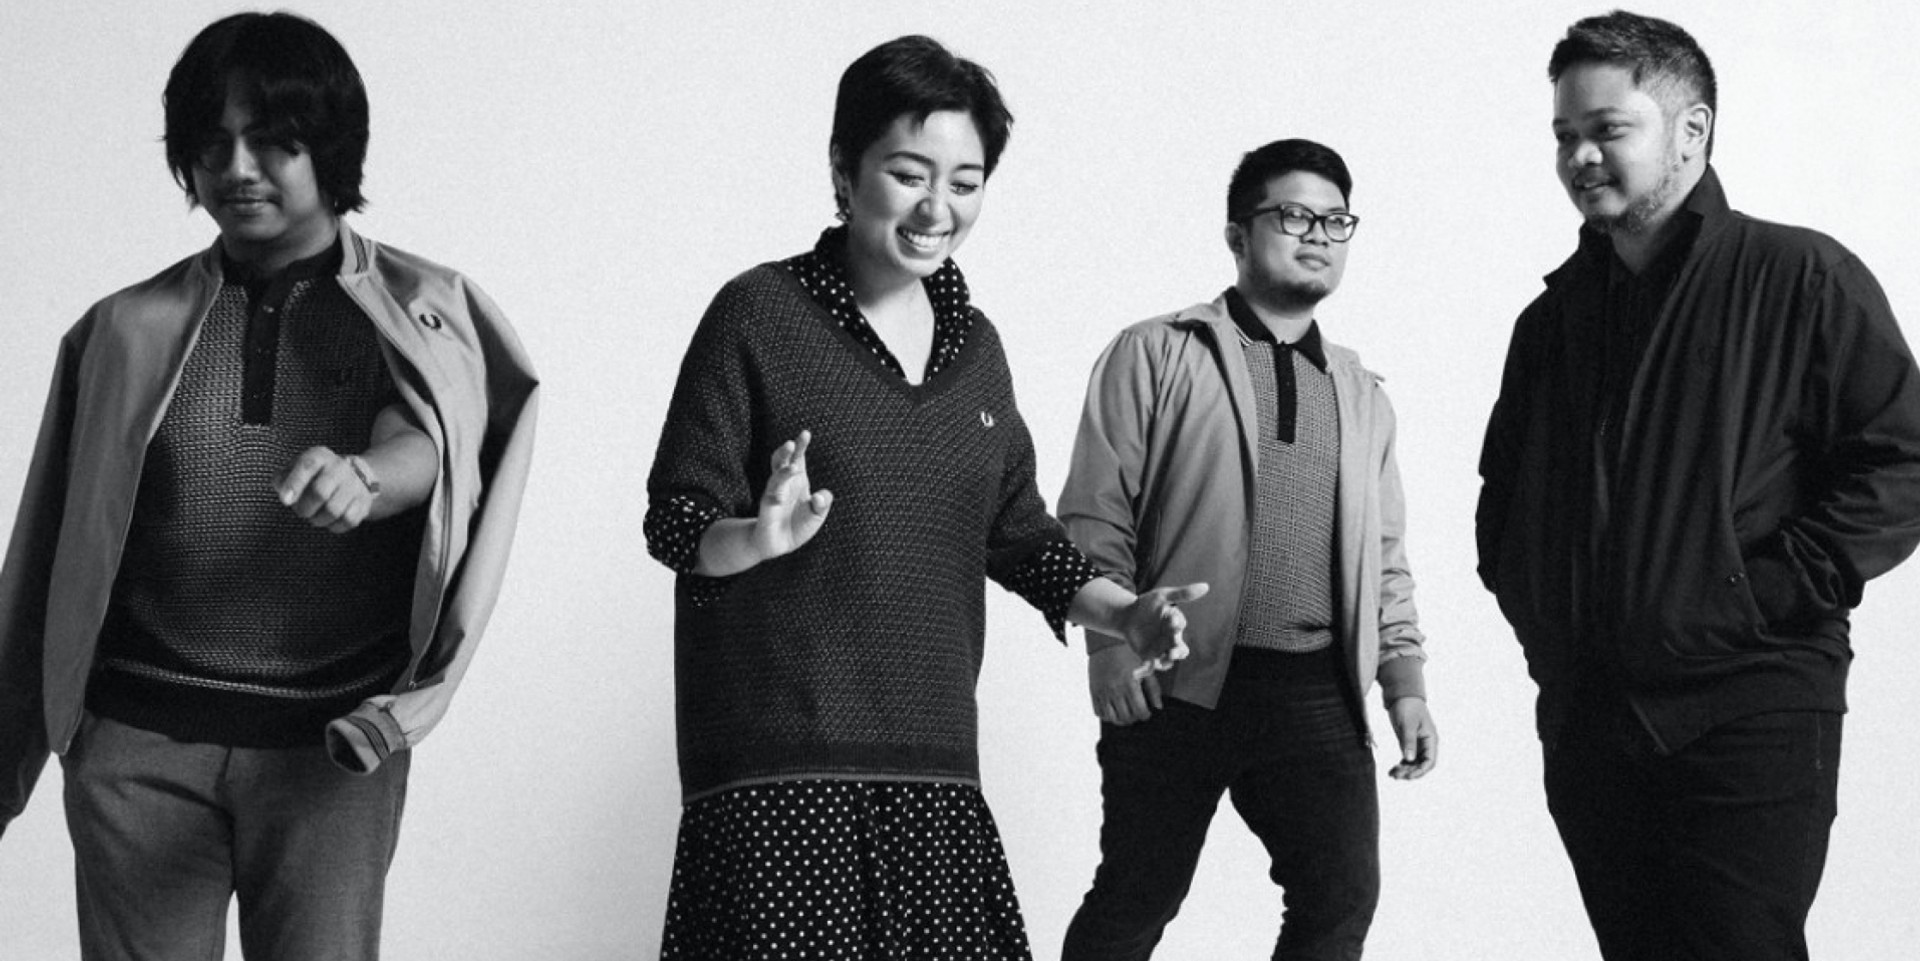 UDD's self-titled album: A track-by-track guide